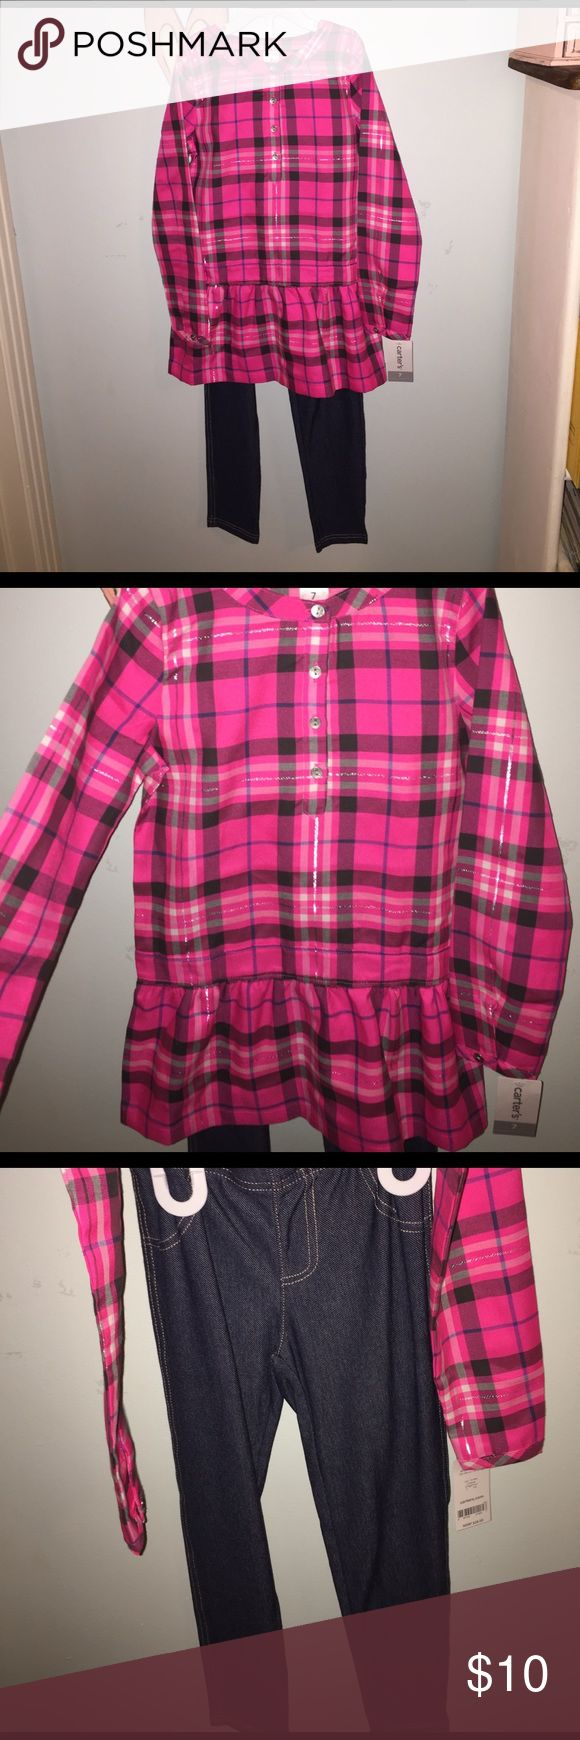 Girls 2 piece outfit NWT Girls 2 piece outfit NWT. CARTERS size 7. Pink plaid Shirt with jeggings! Easy spring outfit for any little girl! Carter's Matching Sets